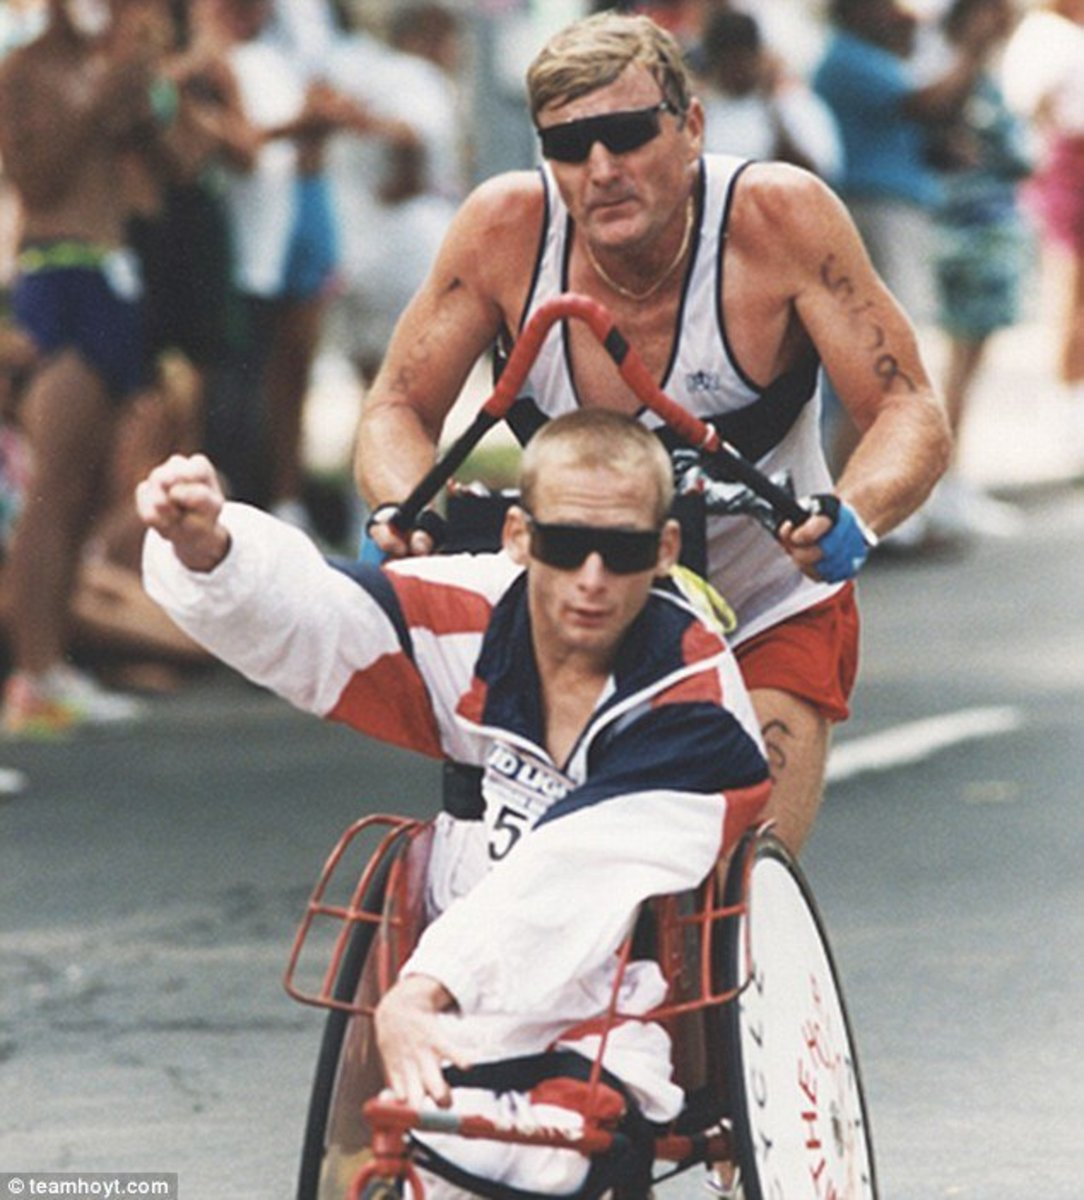 Dick and Rick Hoyt in Ironman Triathlon